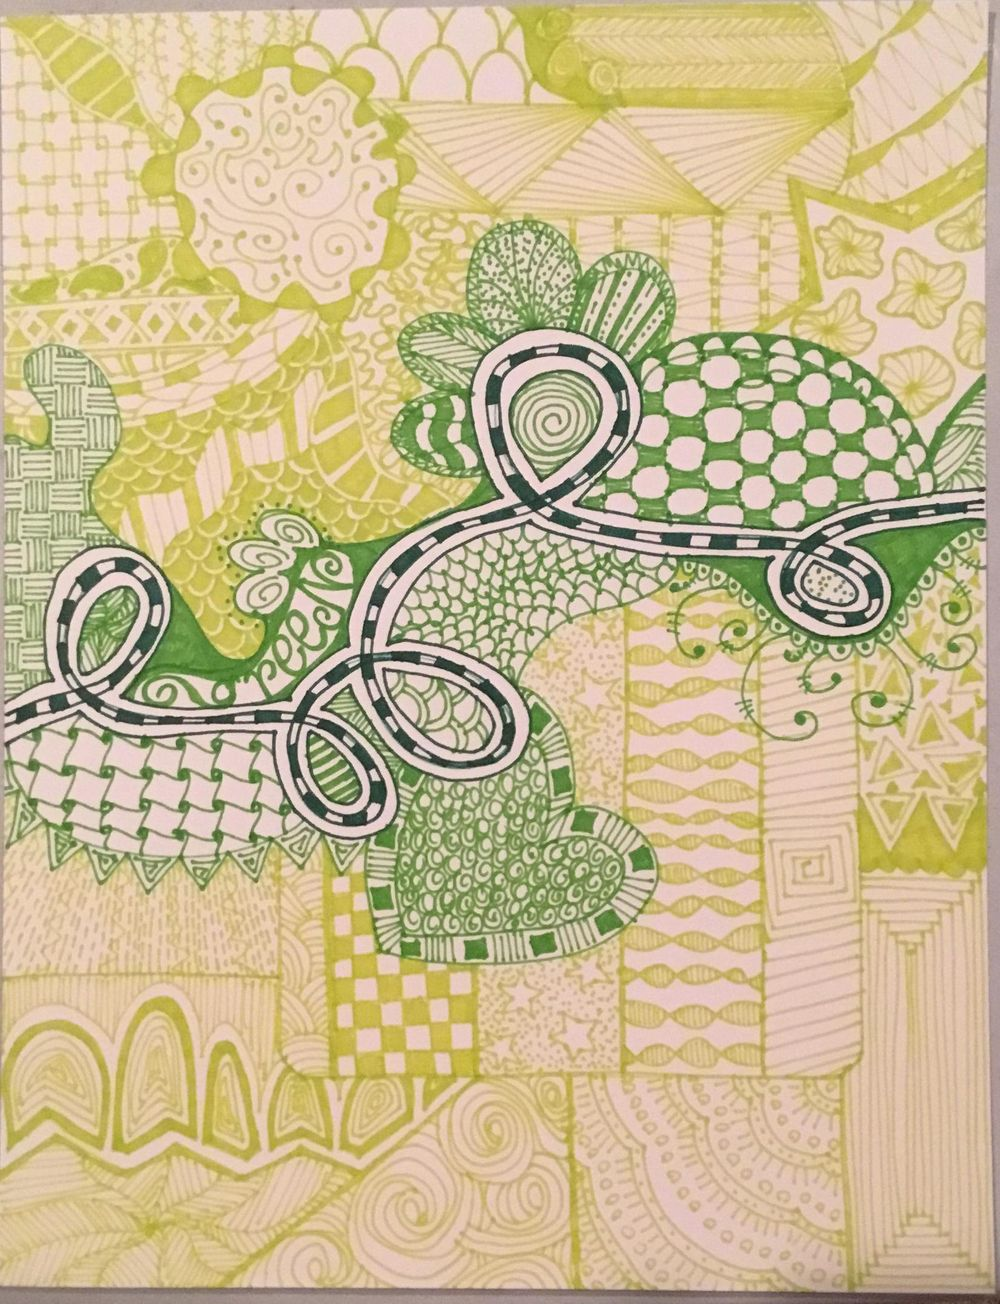 Big Green Doodle - image 1 - student project